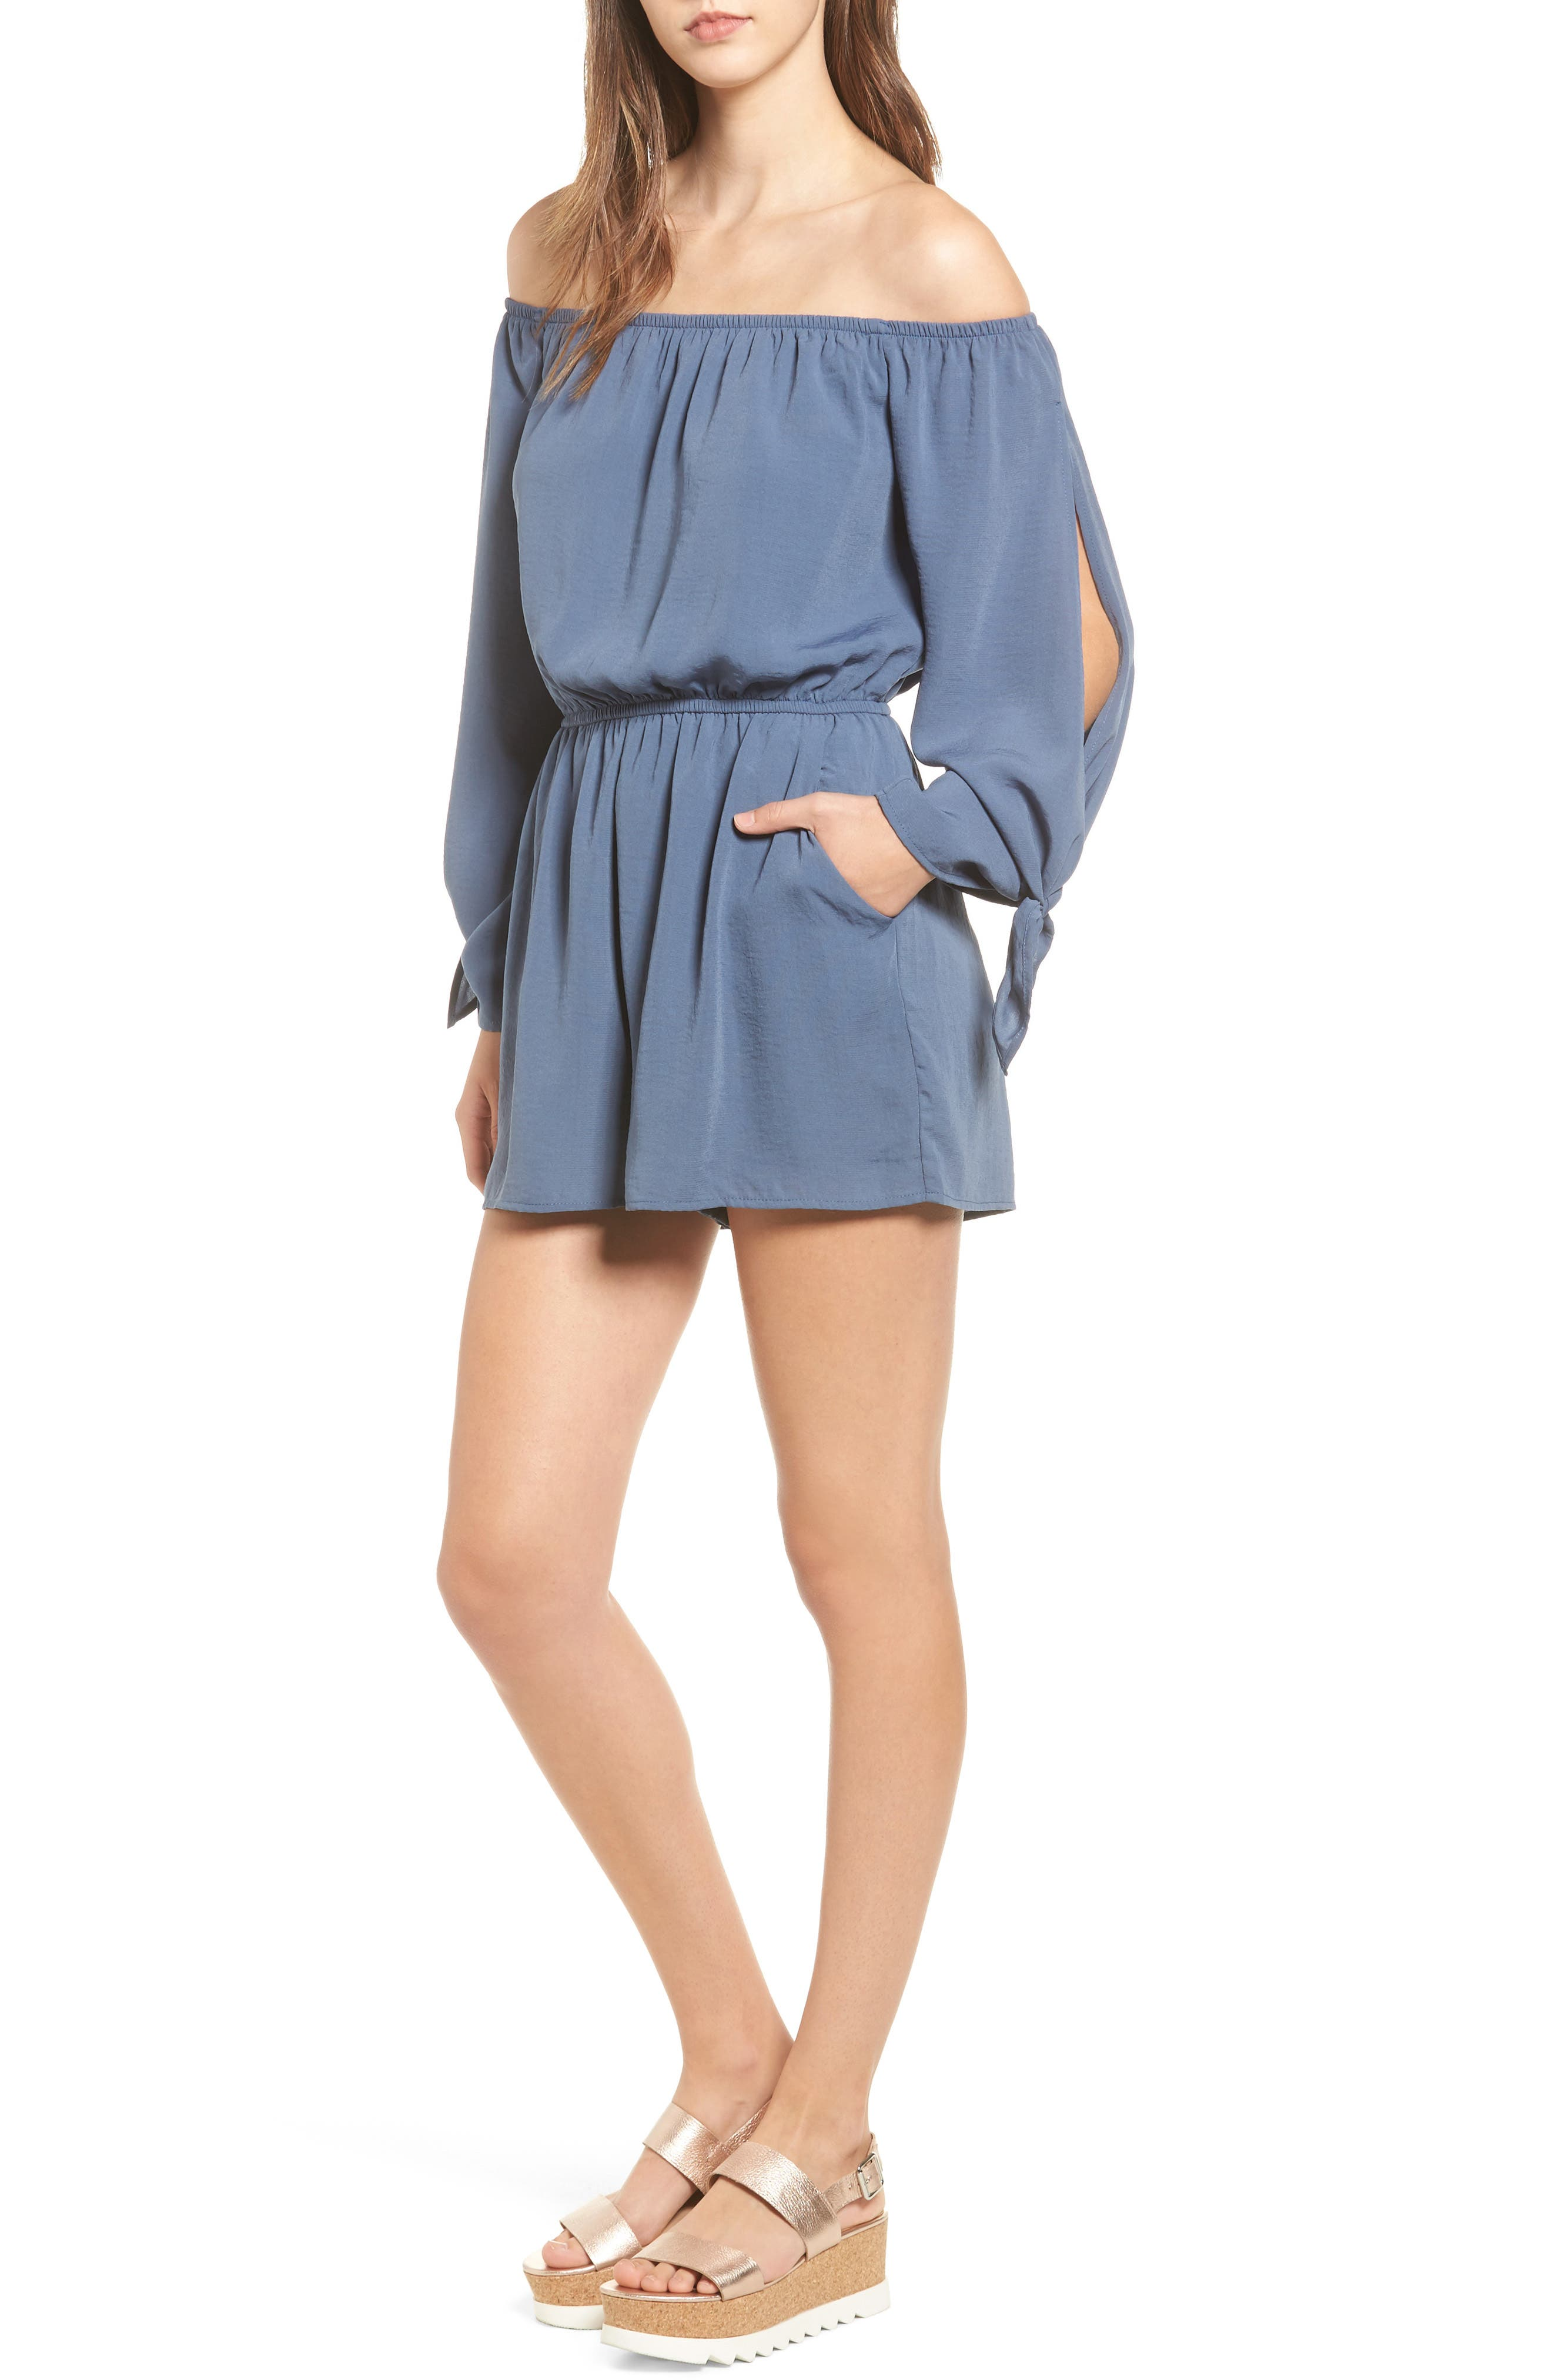 One Clothing Split Sleeve Satin Romper